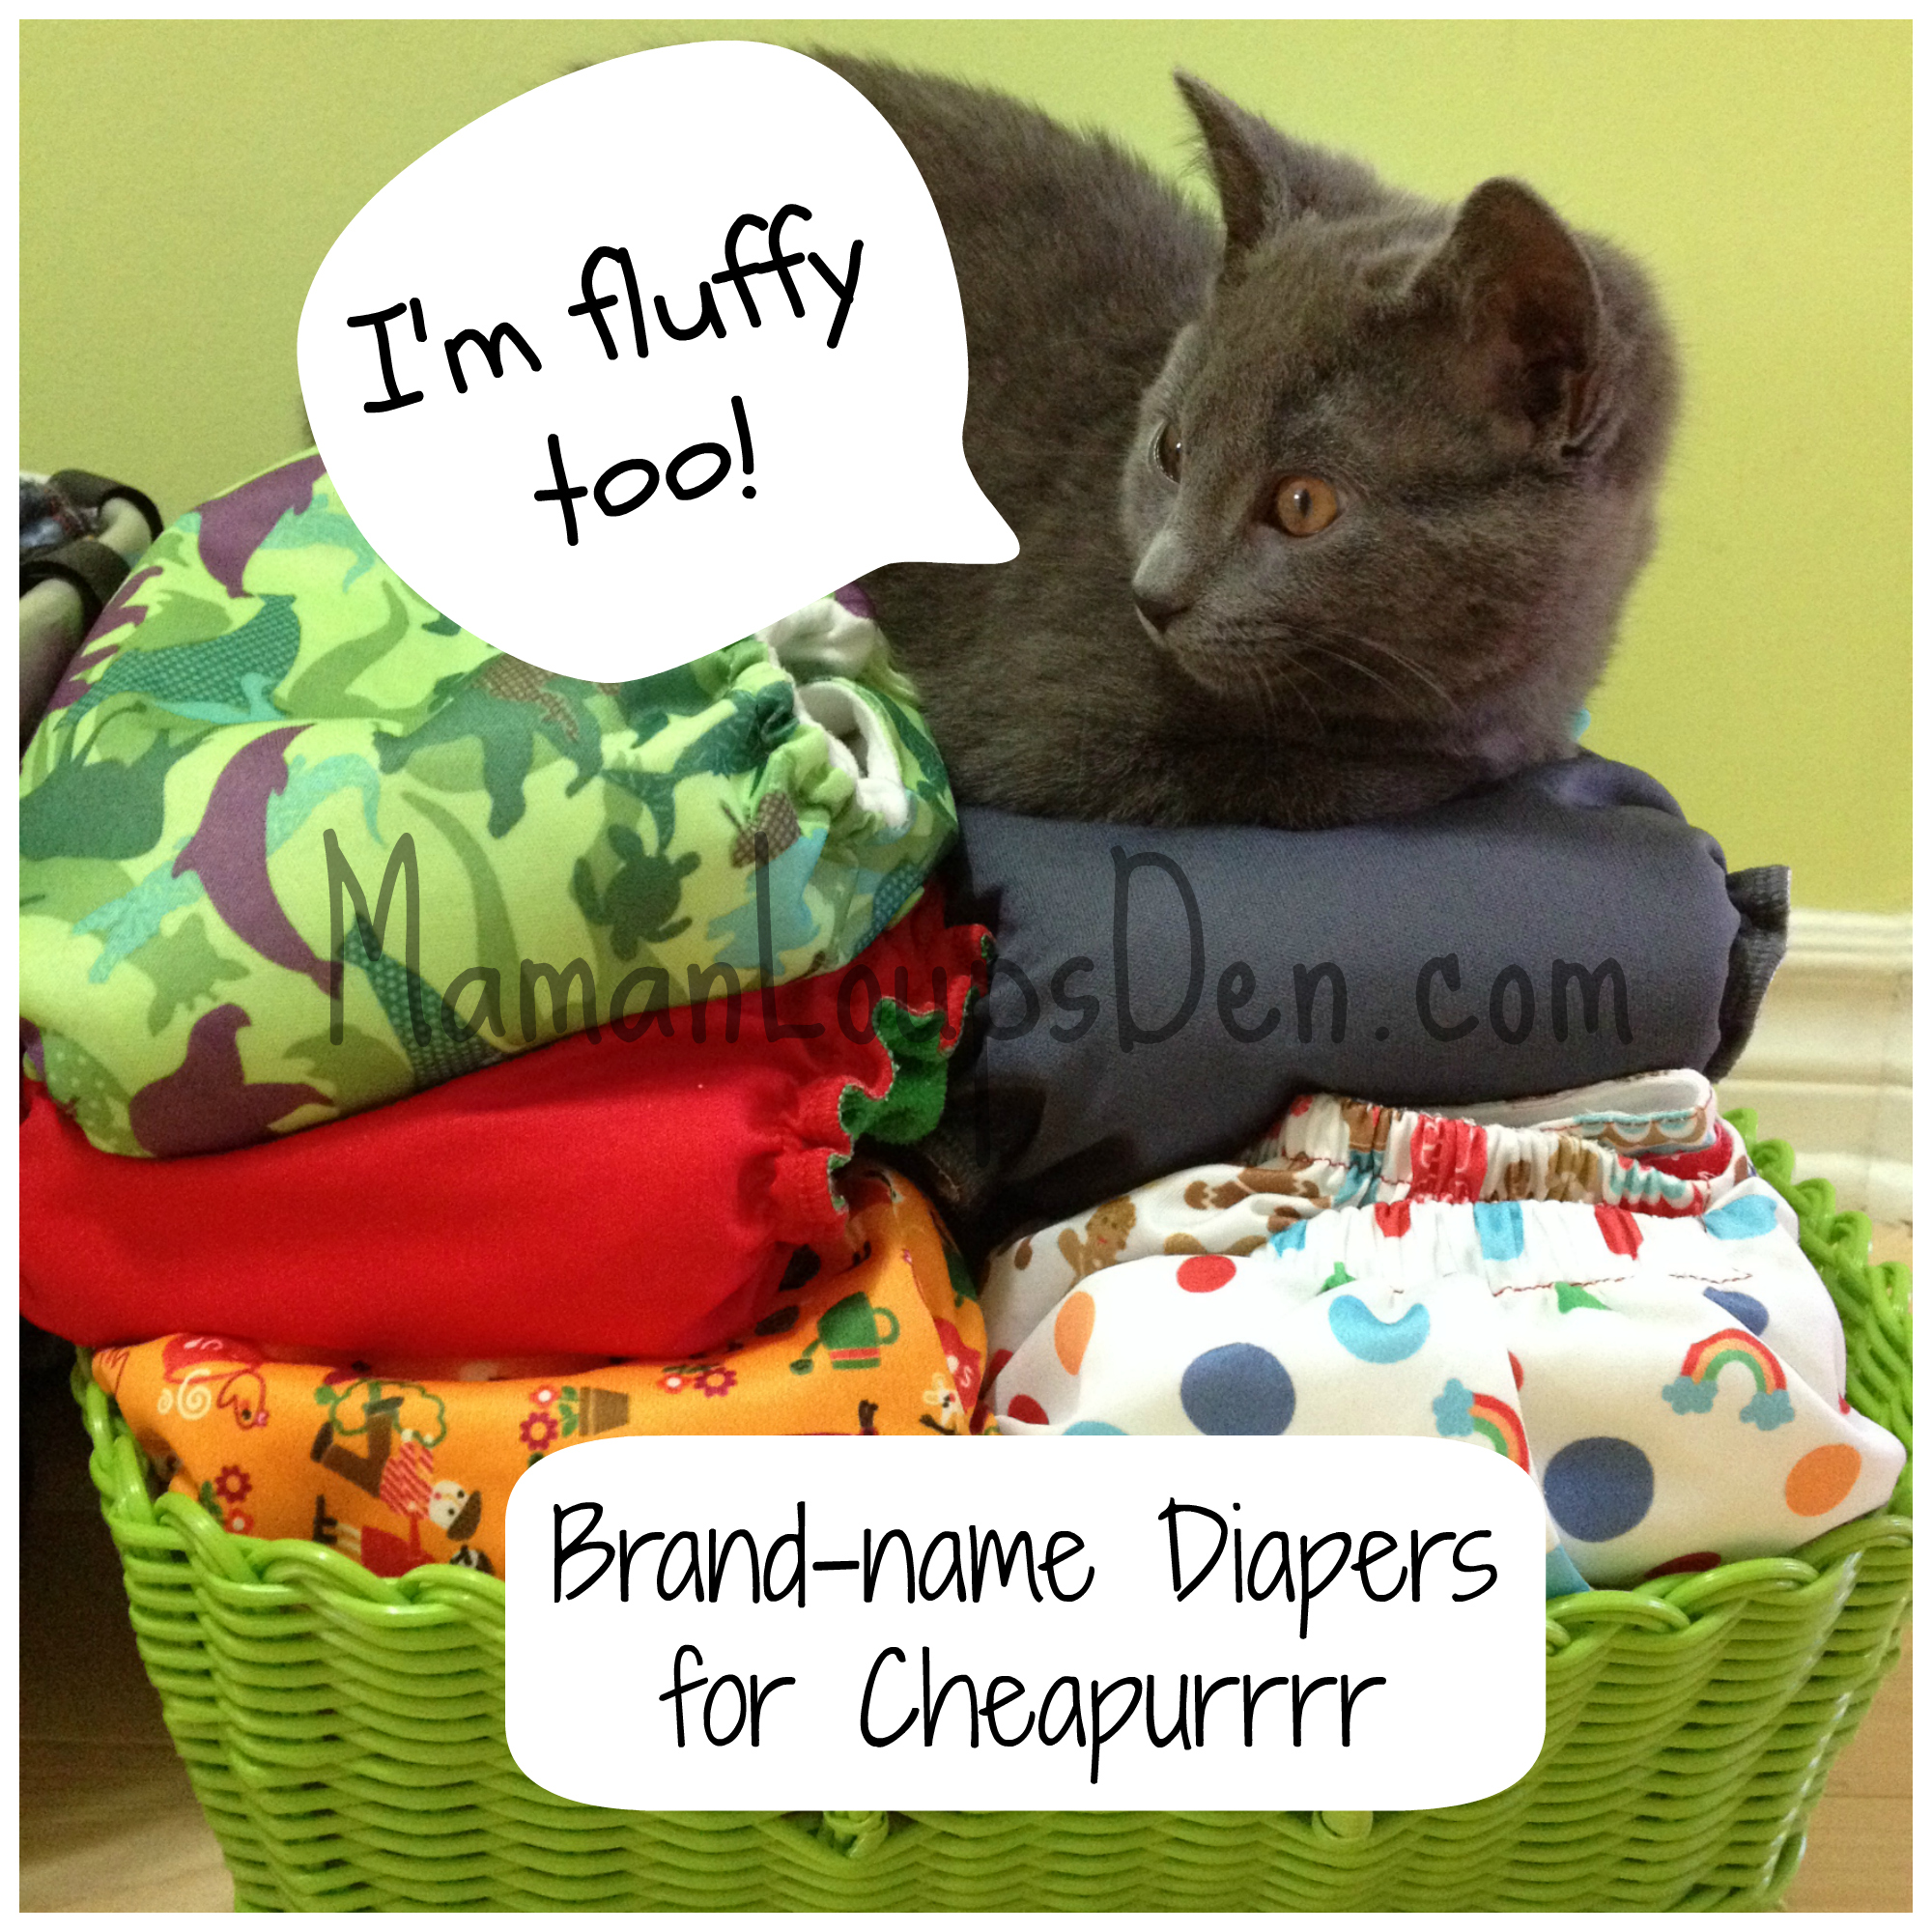 Brand Name Diapers for Cheapurrr